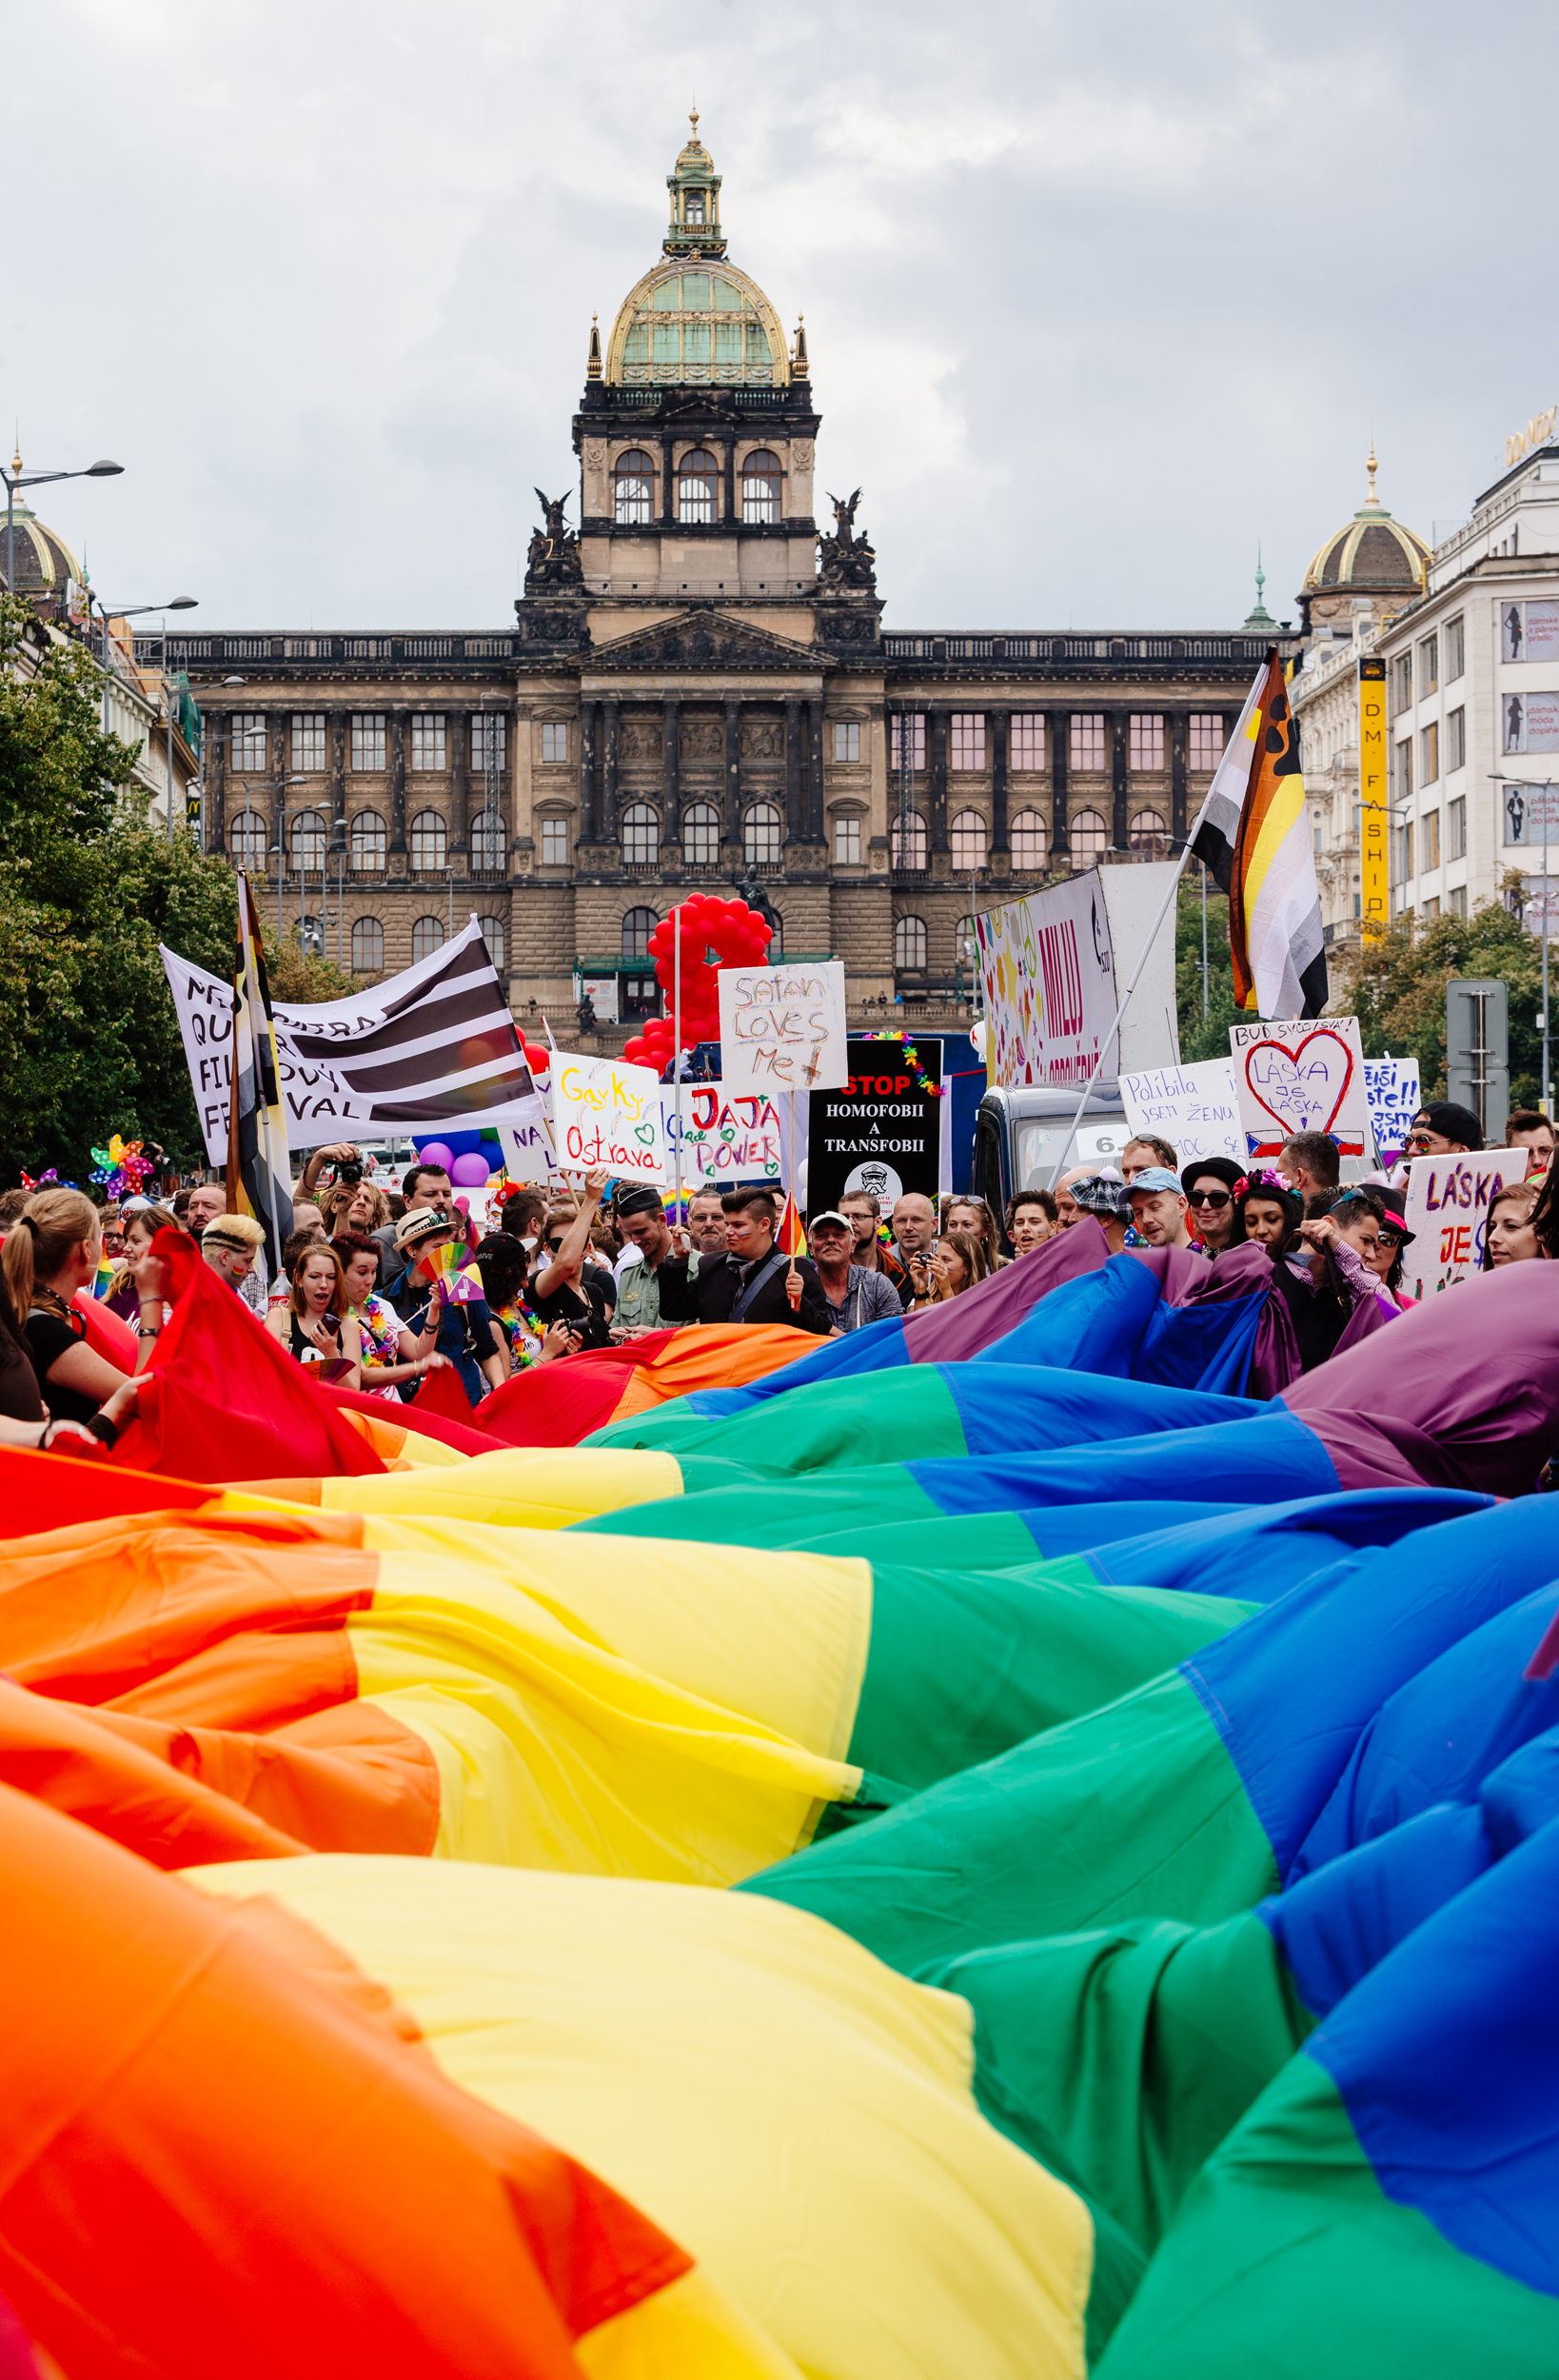 Prague_Pride_2014_V%C3%A1clavsk%C3%A9_n%C3%A1m%C4%9Bst%C3%AD_%282%29 The History of Homosexuality: Gay Pride